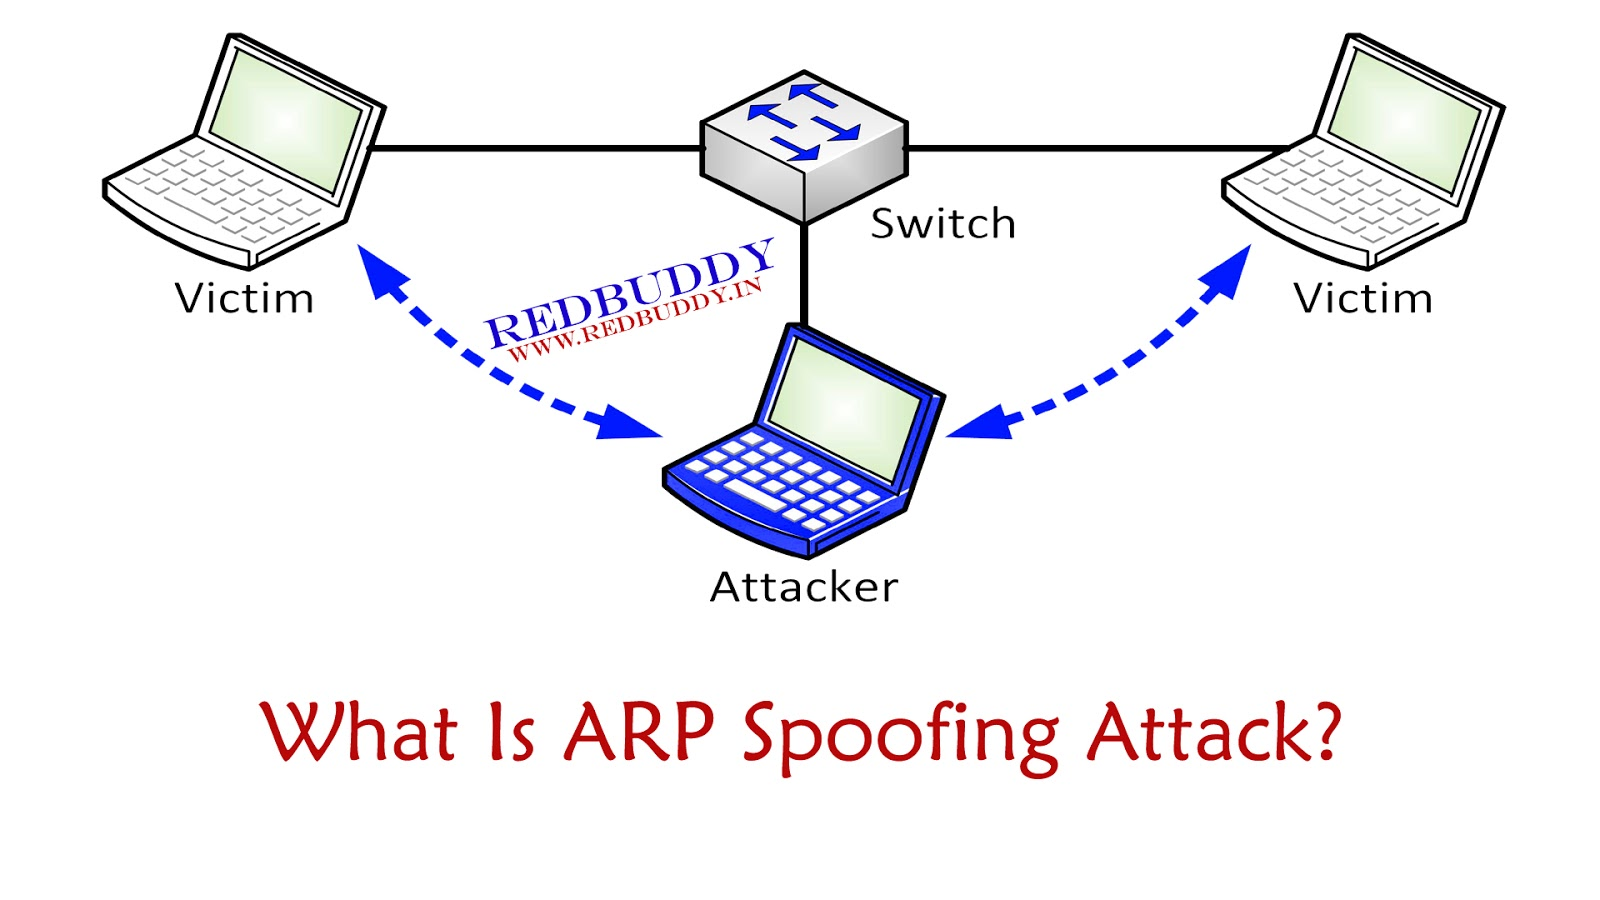 What Is ARP Spoofing Attack? - Redbuddy - The Information